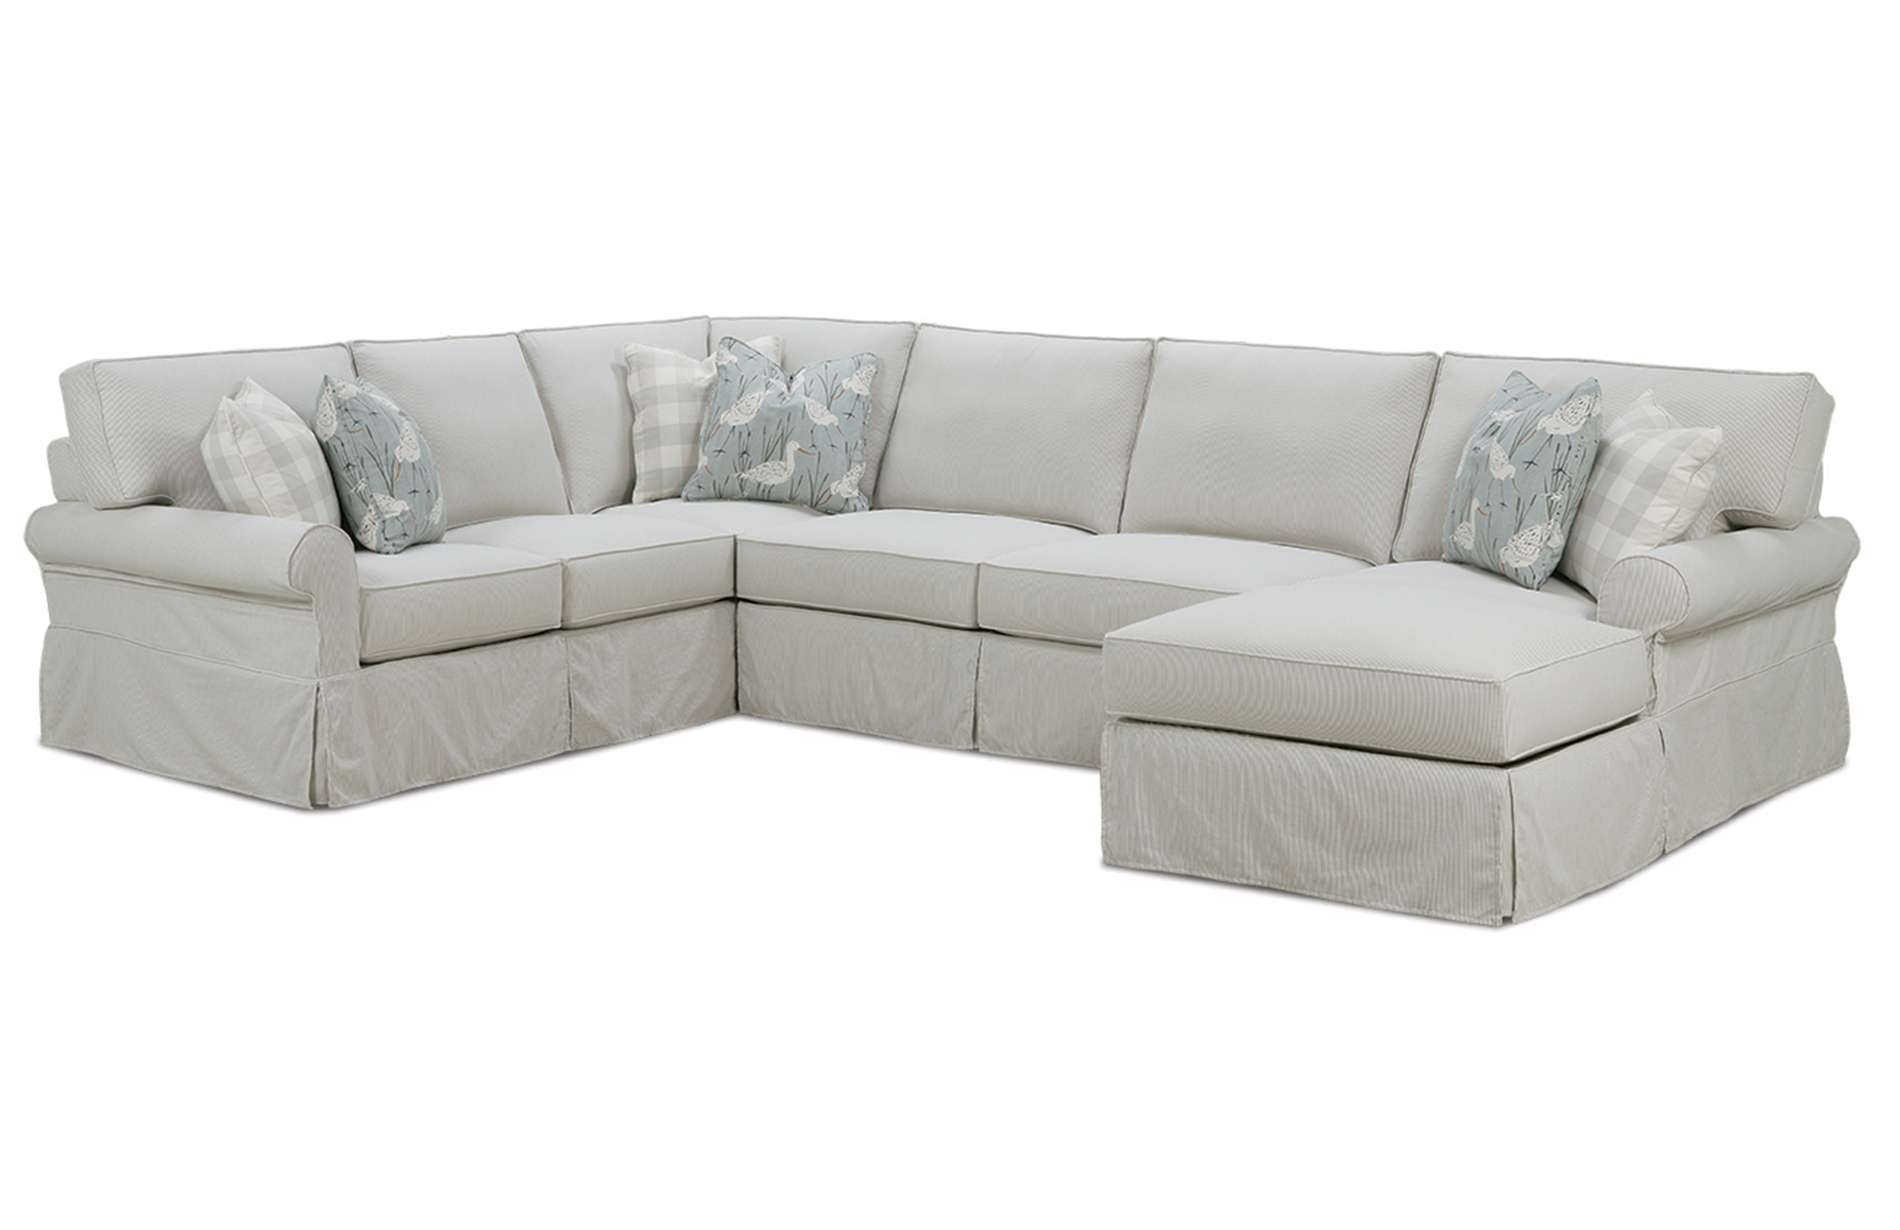 Easton Slipcover Sectional Sofa  Rowe Furniture  Rowe Furniture